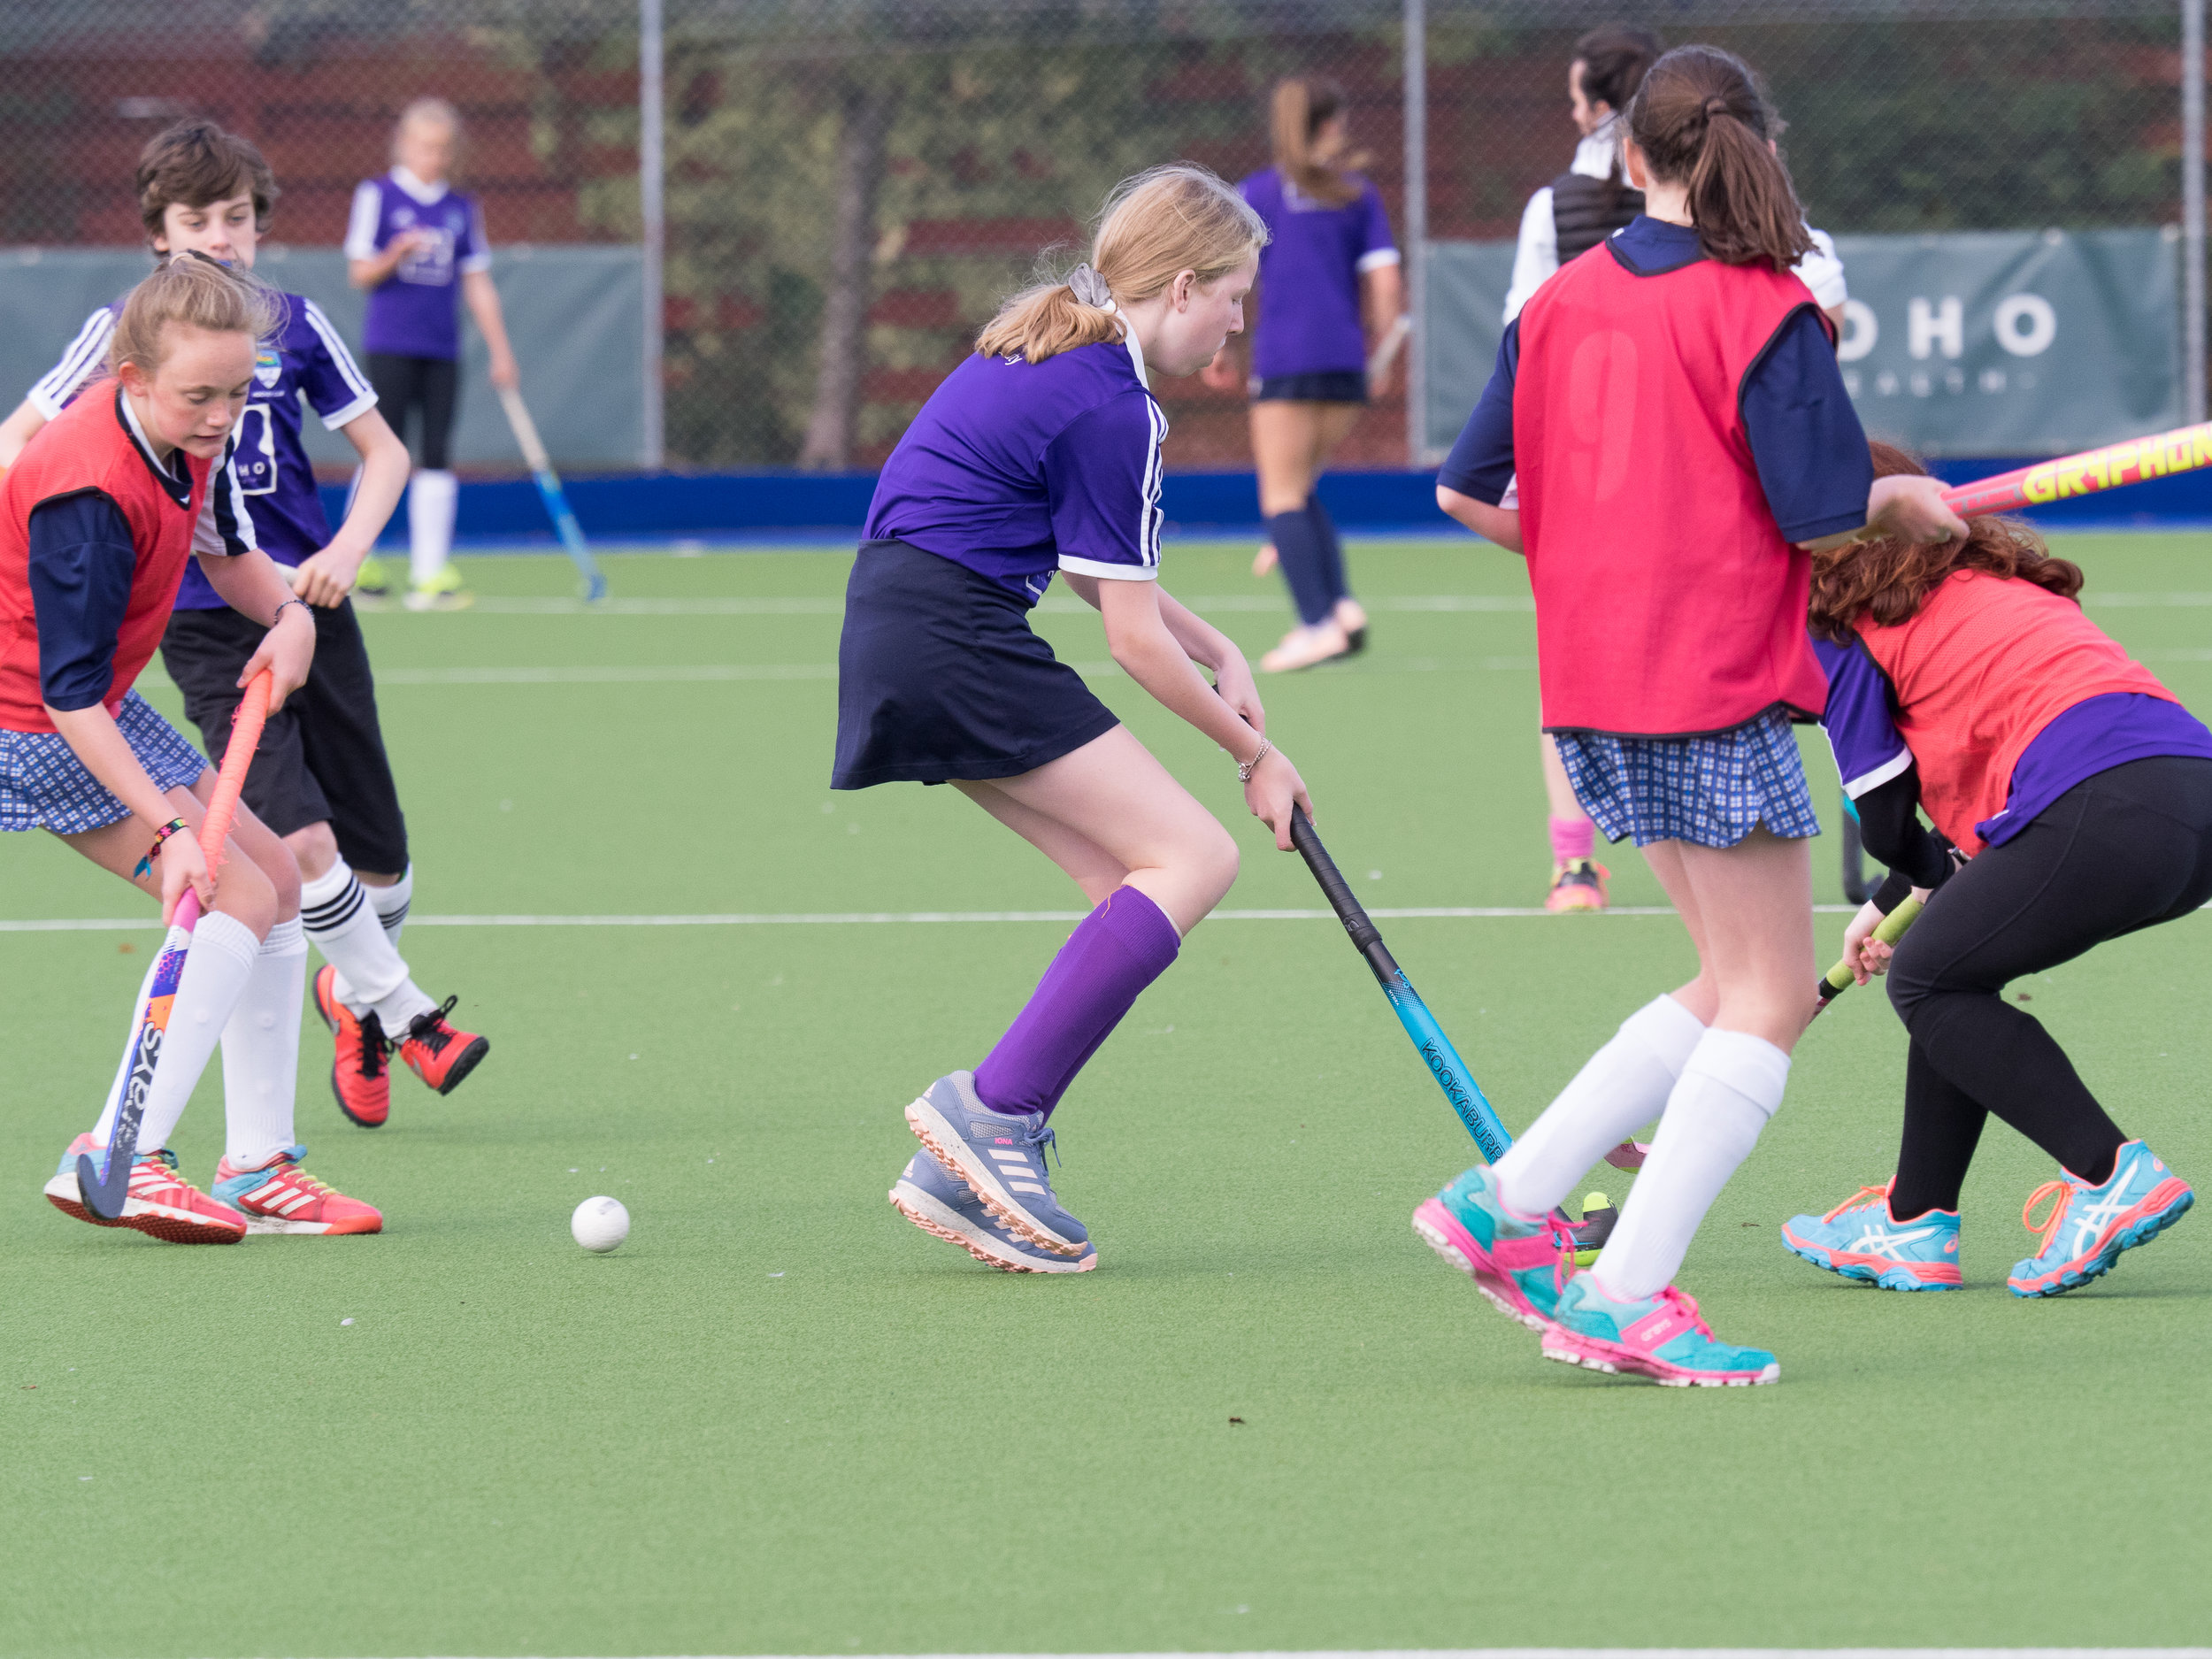 Kinross Hockey Sept 30th-15.jpg